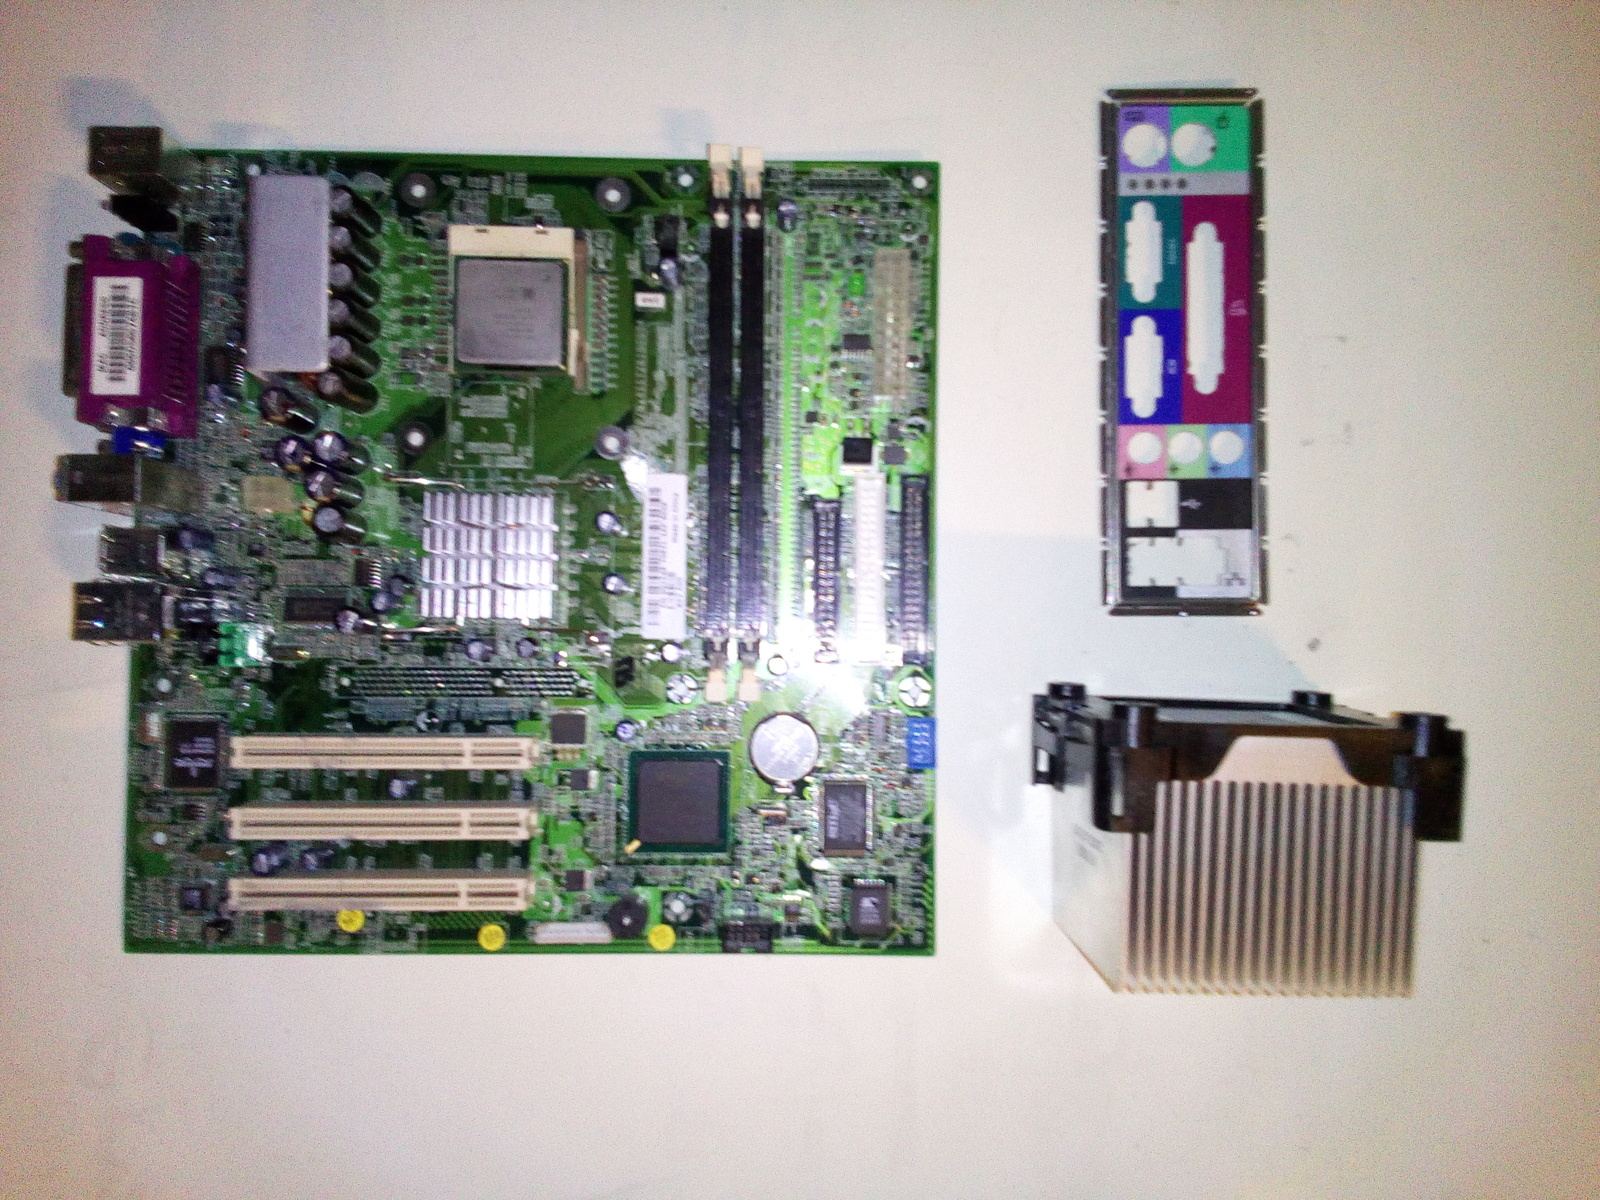 Primary image for Dell Dimension 2400 Motherboard w/Intel P4 2.80GHz CPU & 1GB RAM - CN-0G1548